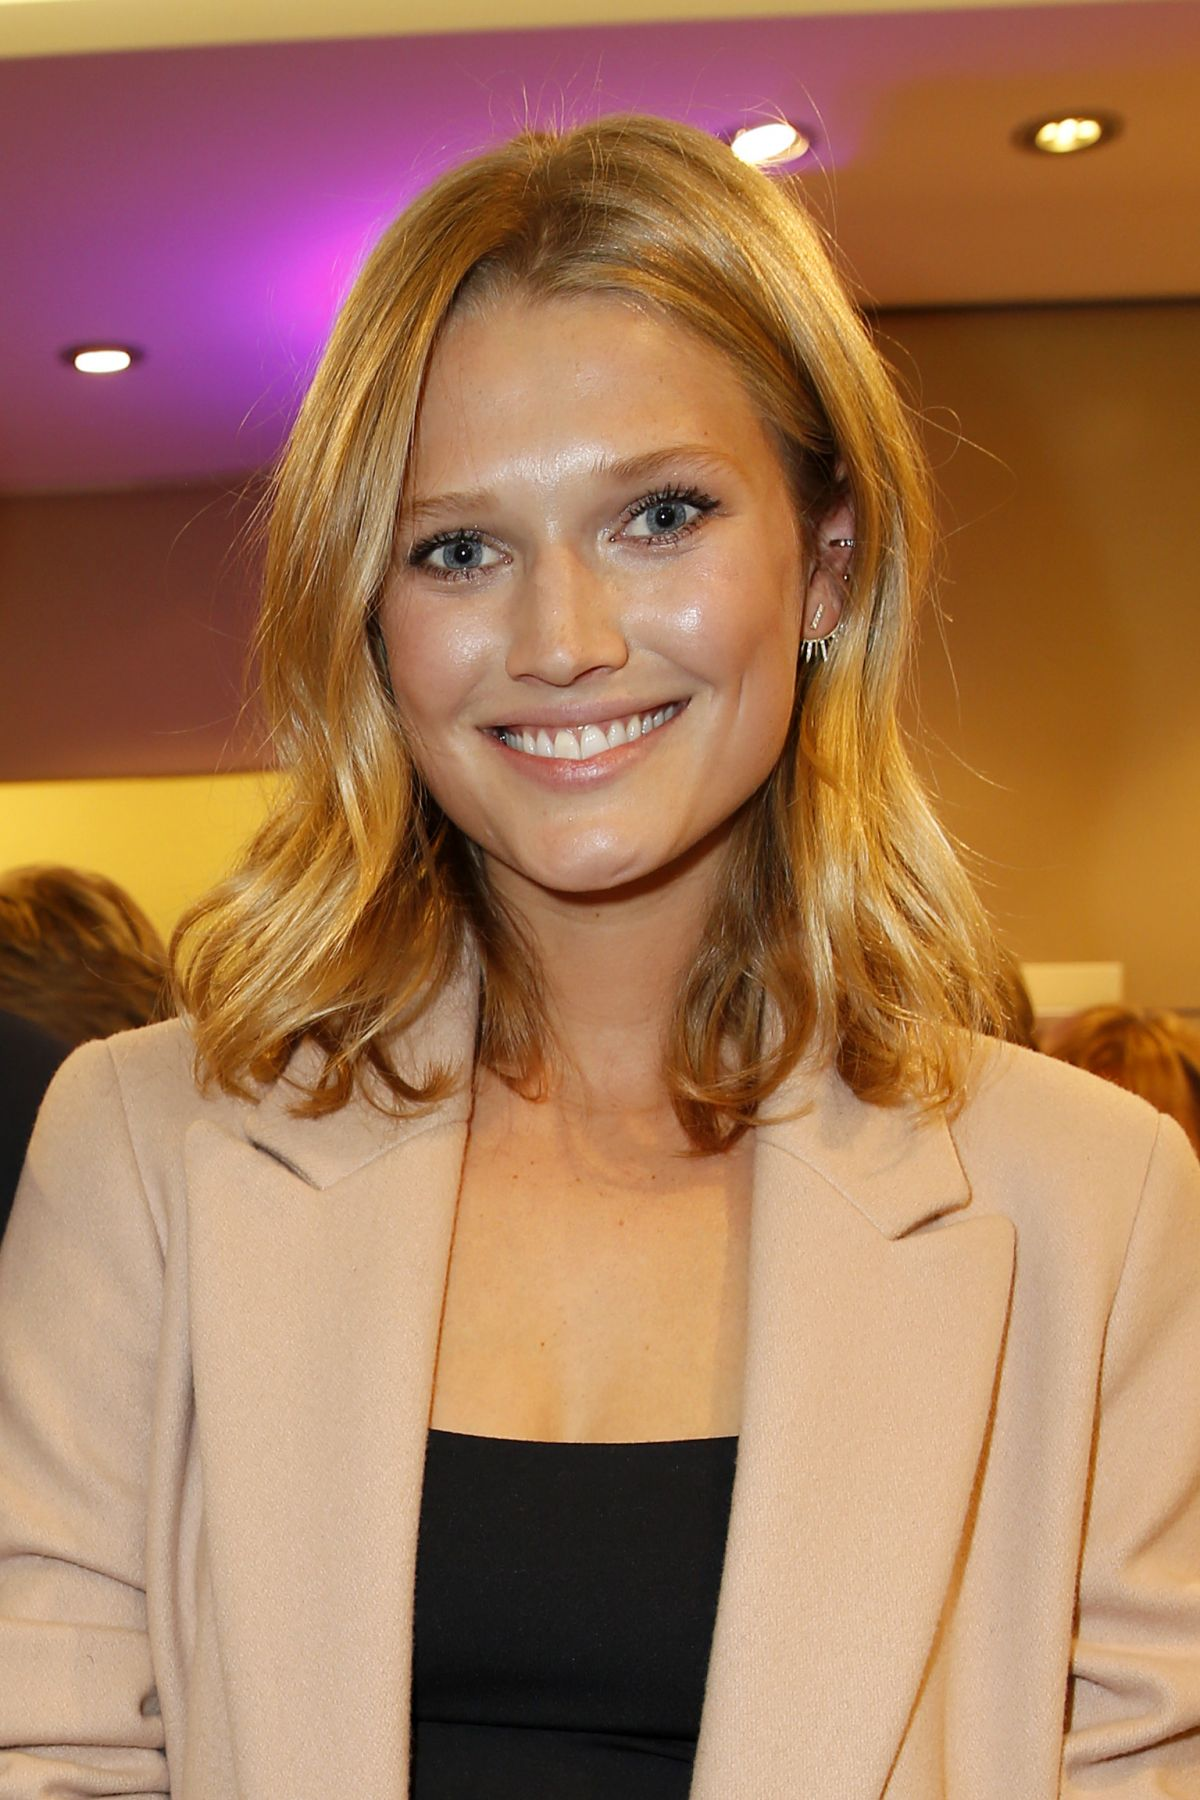 TONI GARRN at Aigner Celebrates 50 Years in Aigner Shop in Munich